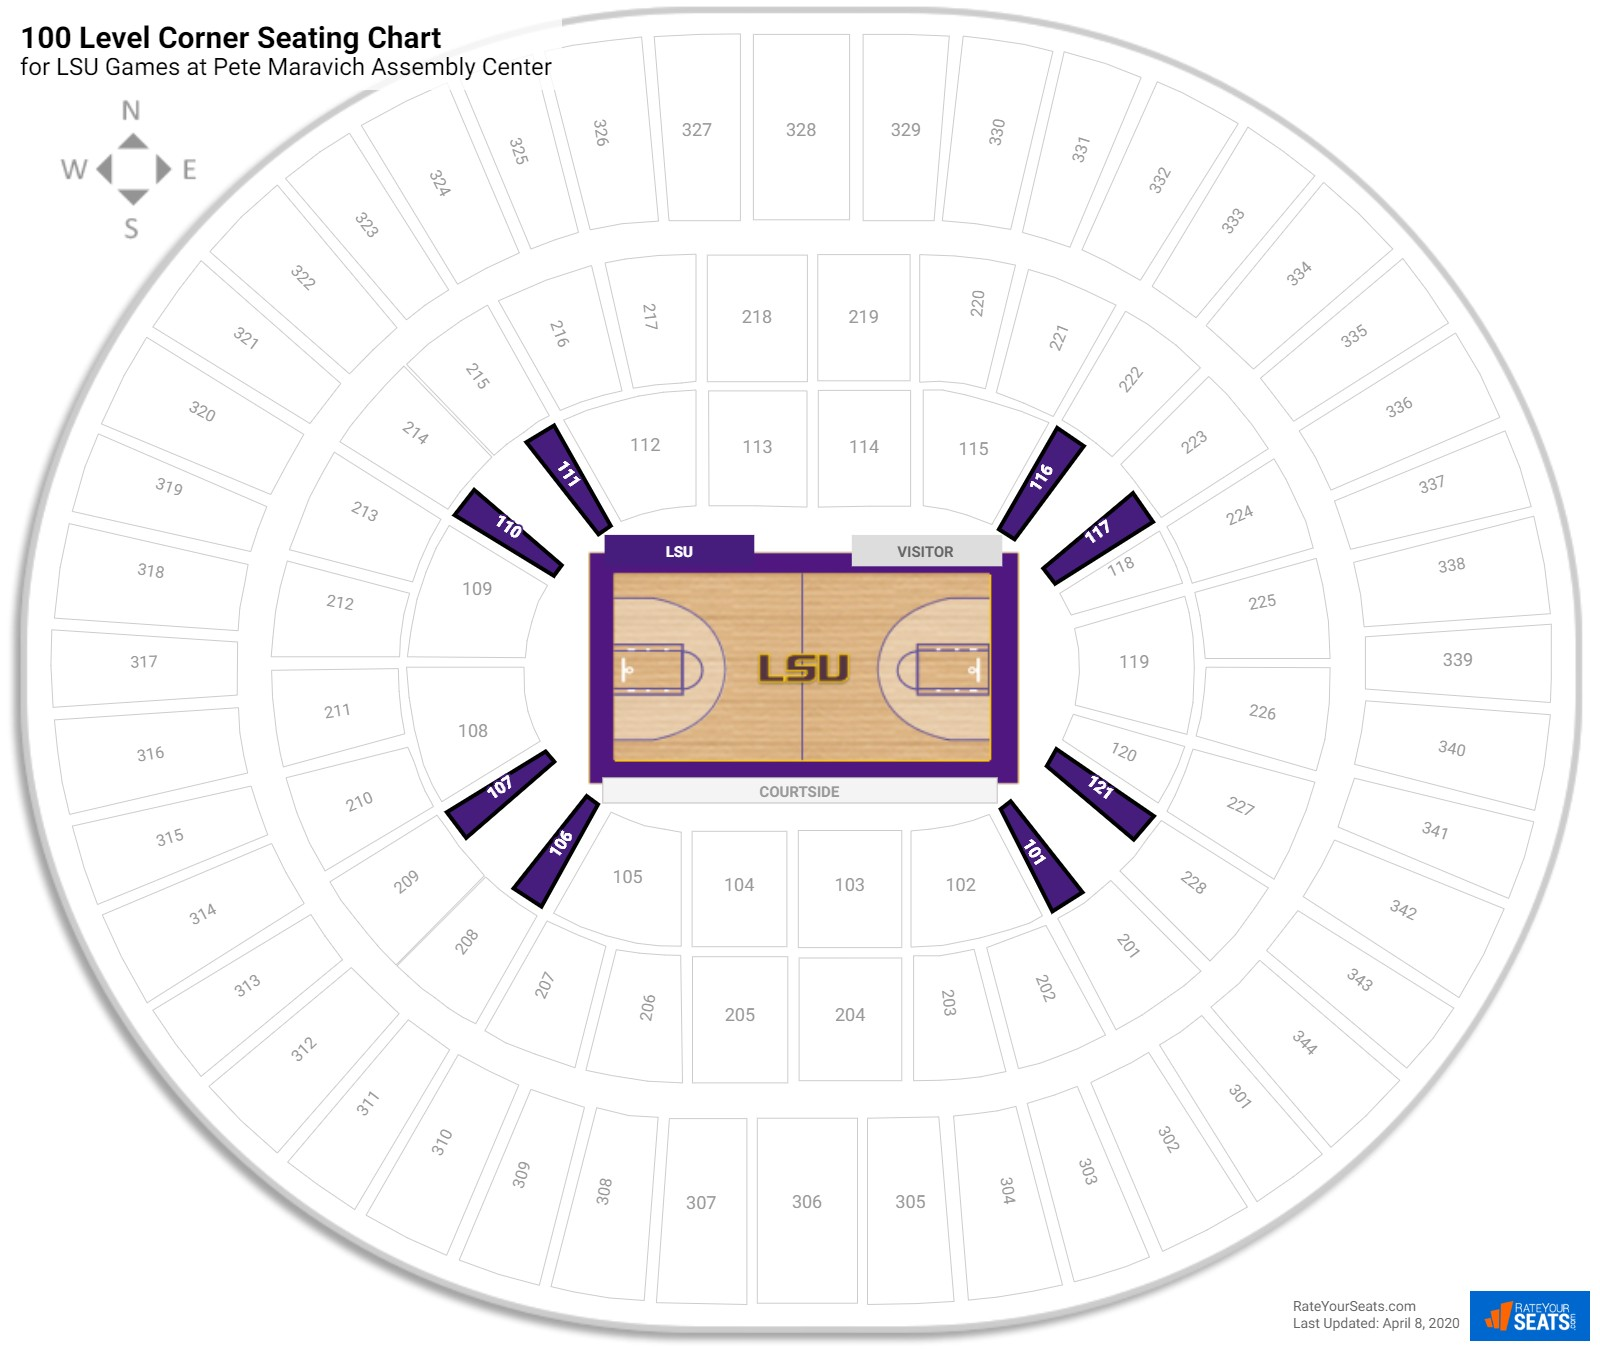 Pete Maravich Assembly Center 100 Level Corner seating chart